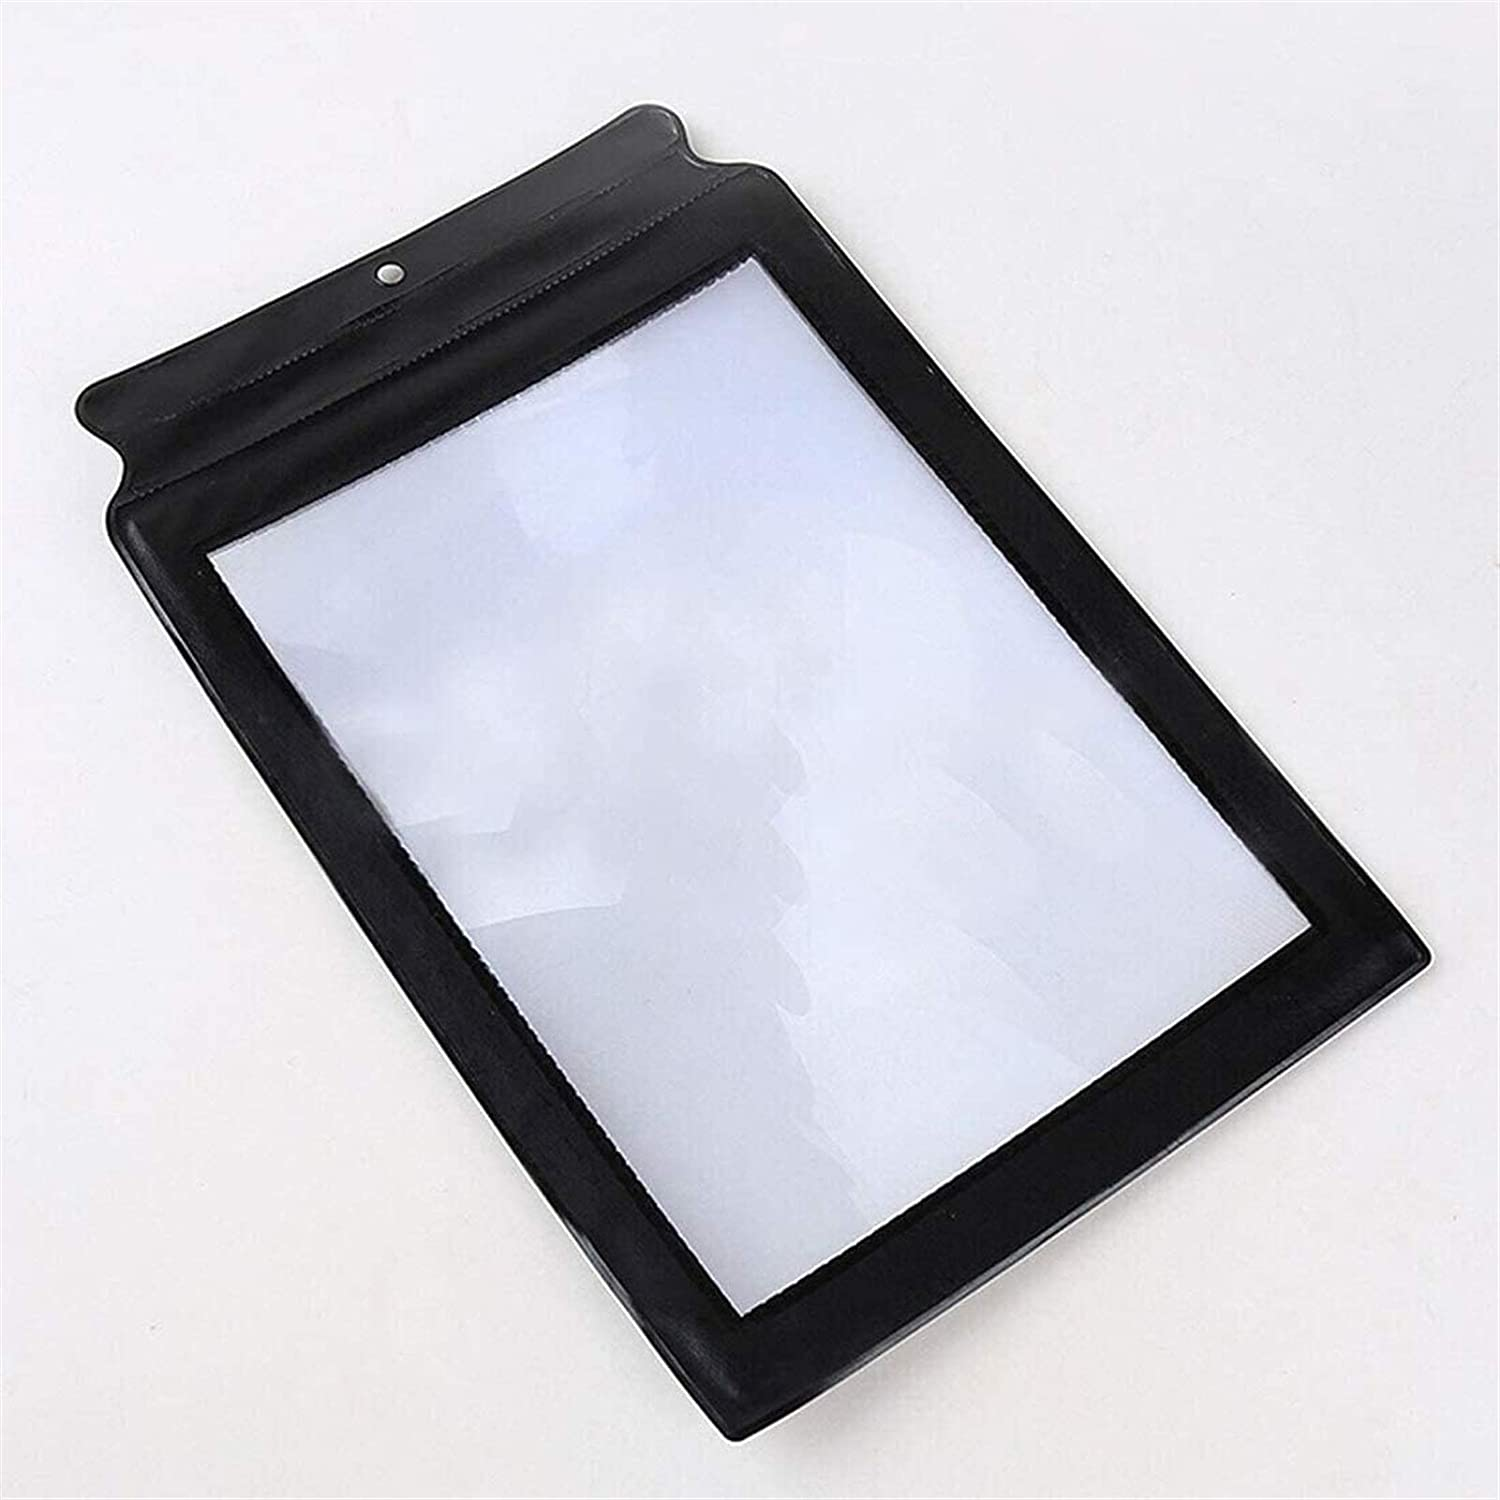 Spring new work CMMWA Portable Reading Choice Magnifier 3X Portab HD A4 Paper Full-Page